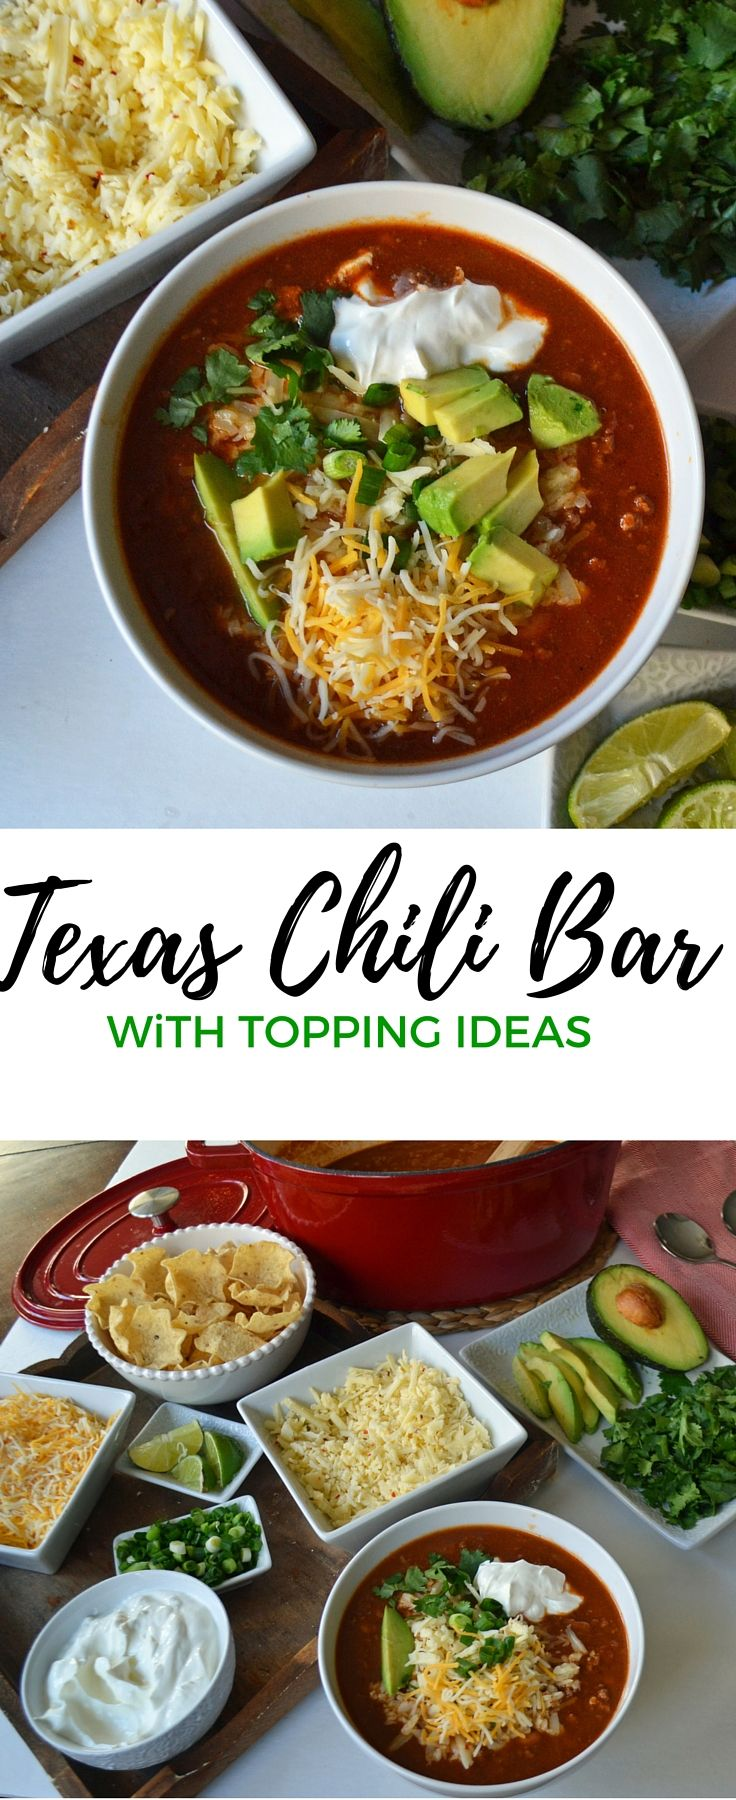 Texas Sized Chili Bar with a secret ingredient in the chili that sets it apart from other chili recipes. Your family will love this recipe! Plus a list of topping ideas to host your own chili bar.